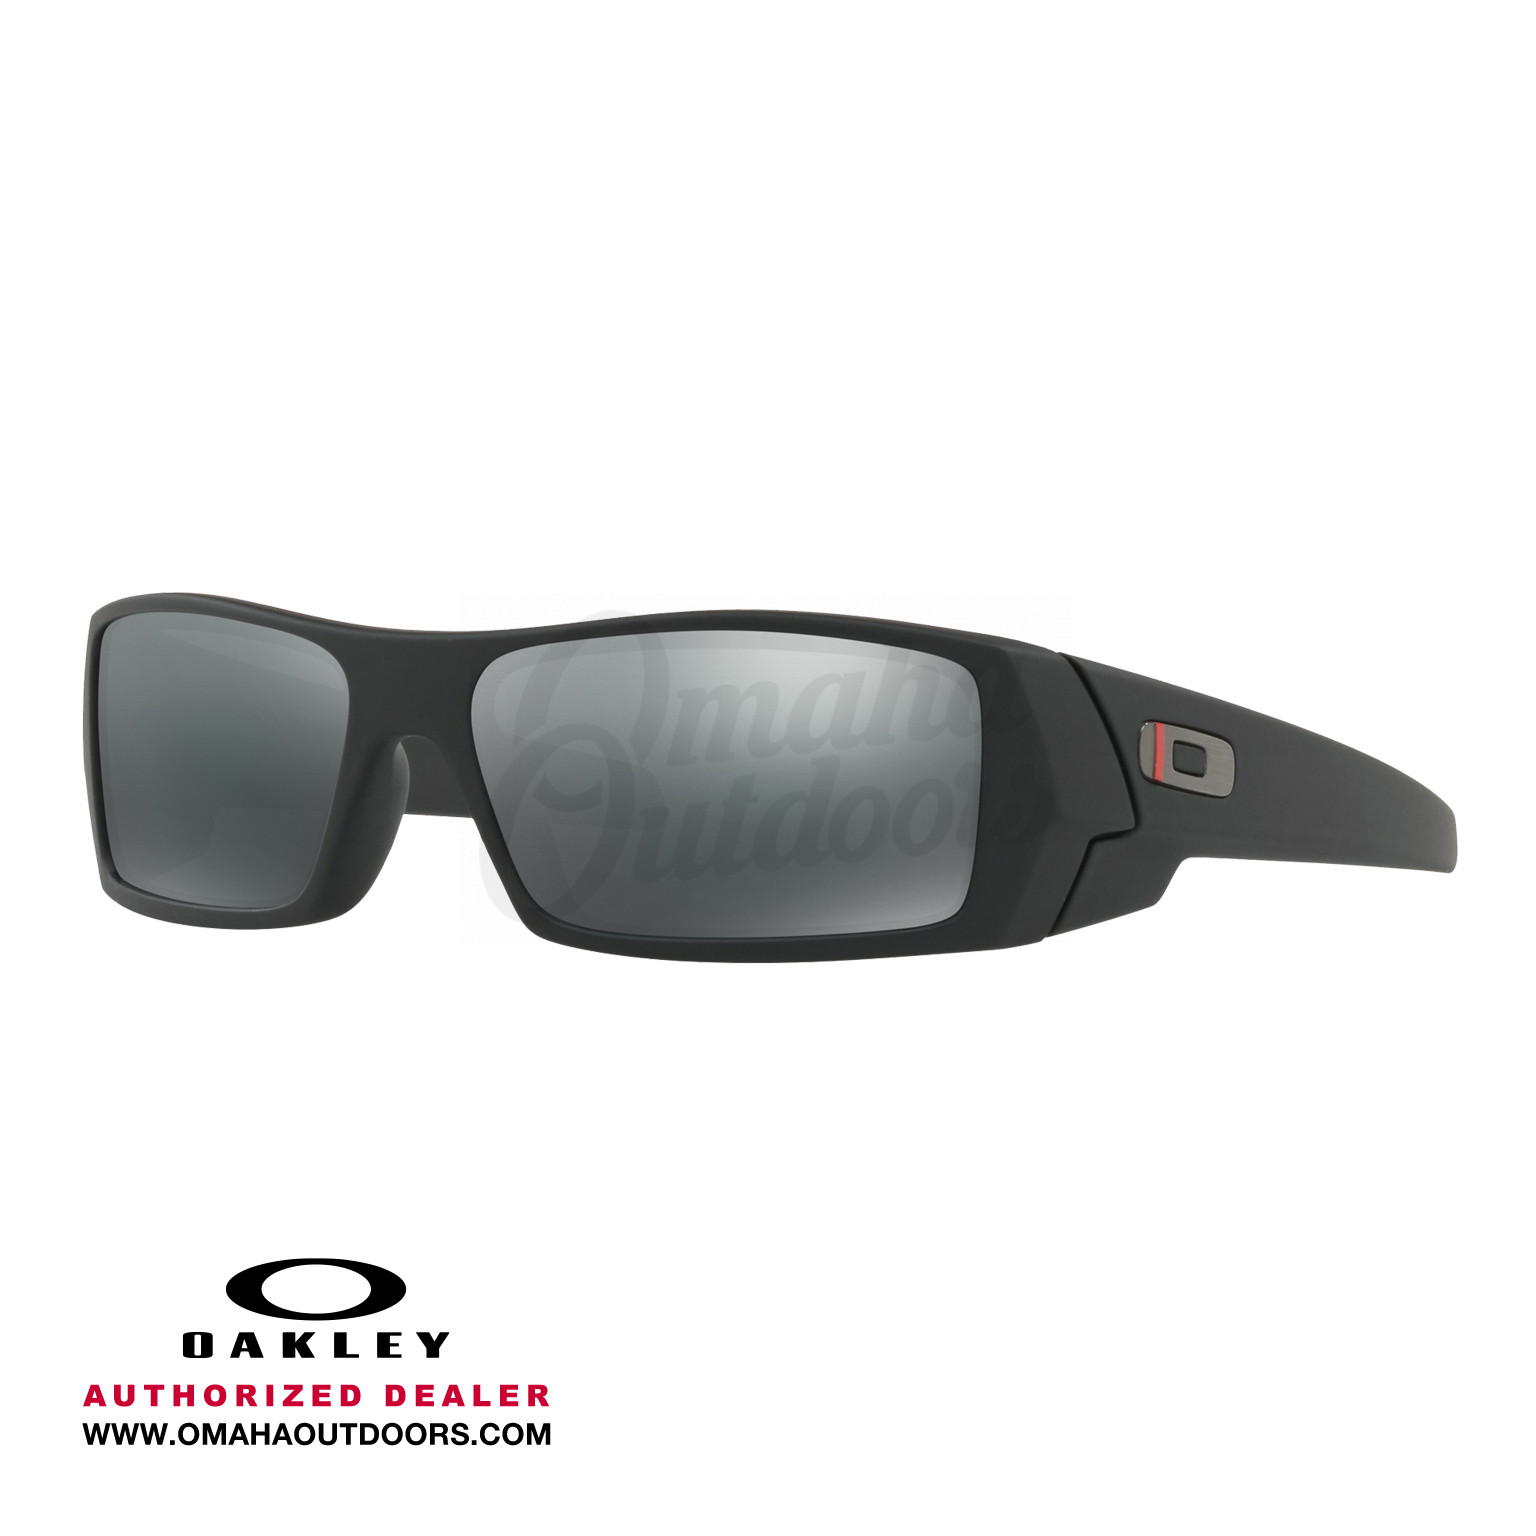 01a8e7fcf0 Oakley SI Gascan Thin Red Line Sunglasses Black Iridium Lens ...